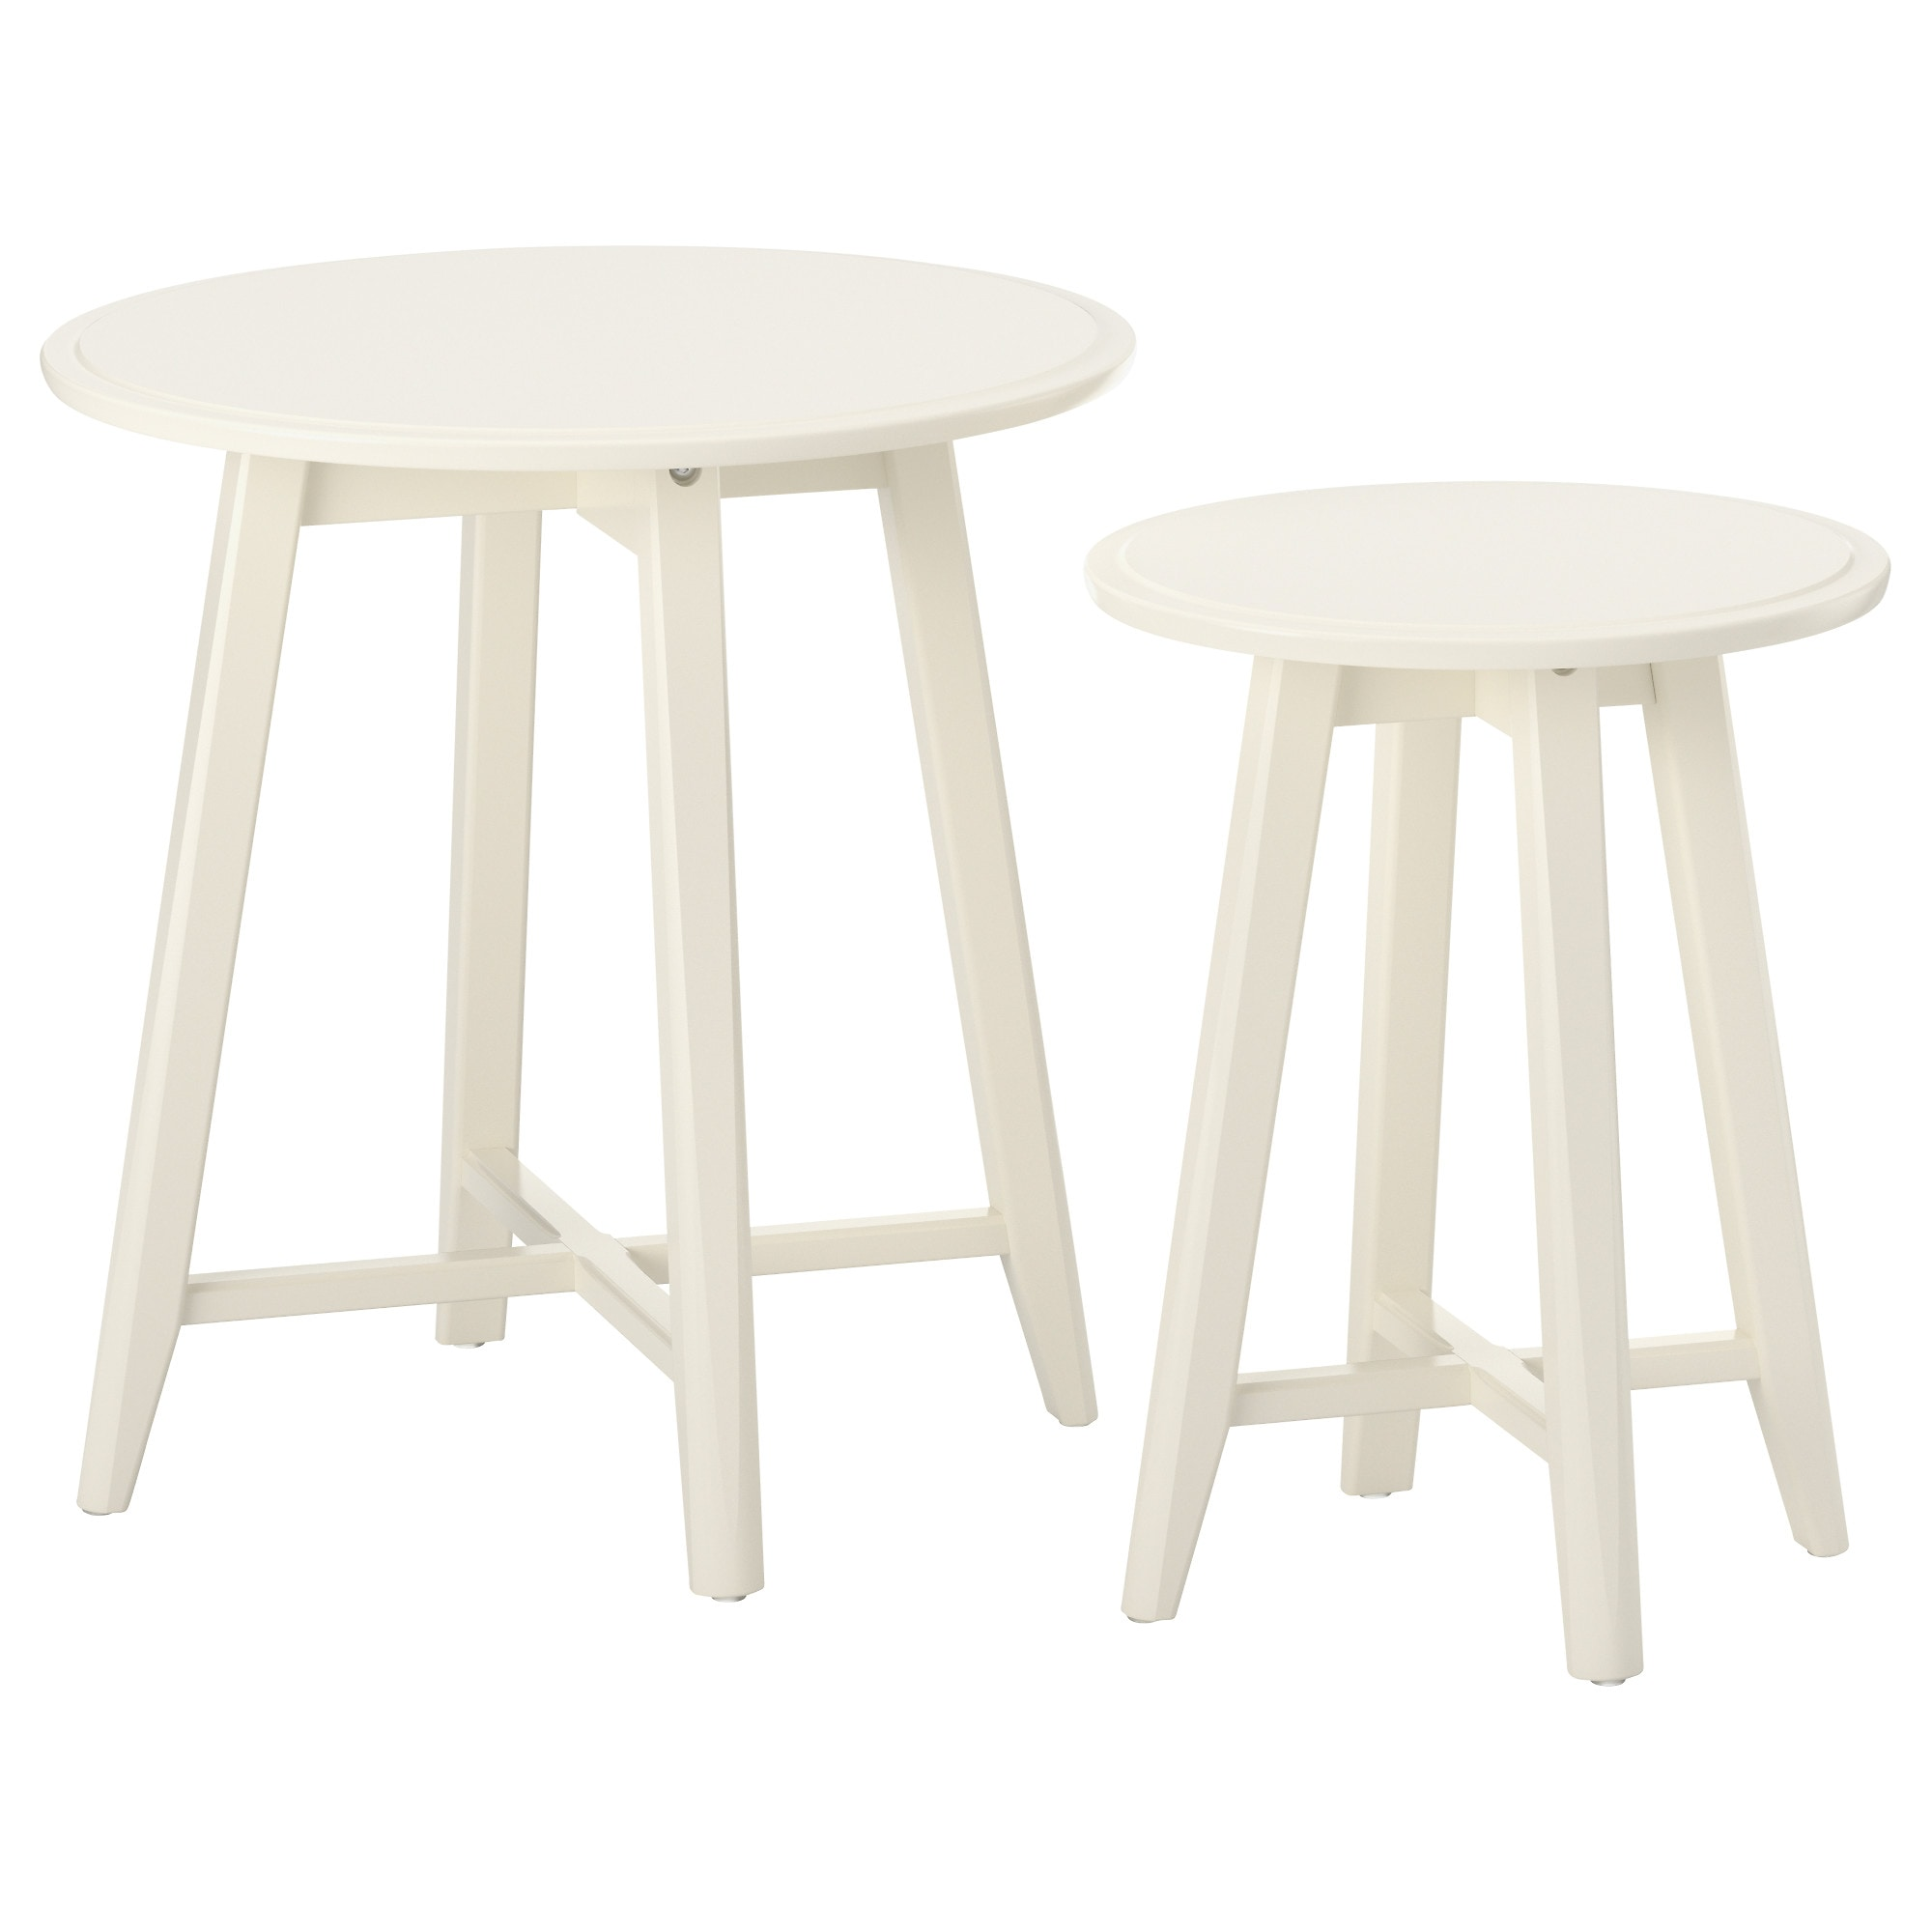 KRAGSTA Nesting tables set of 2 white IKEA